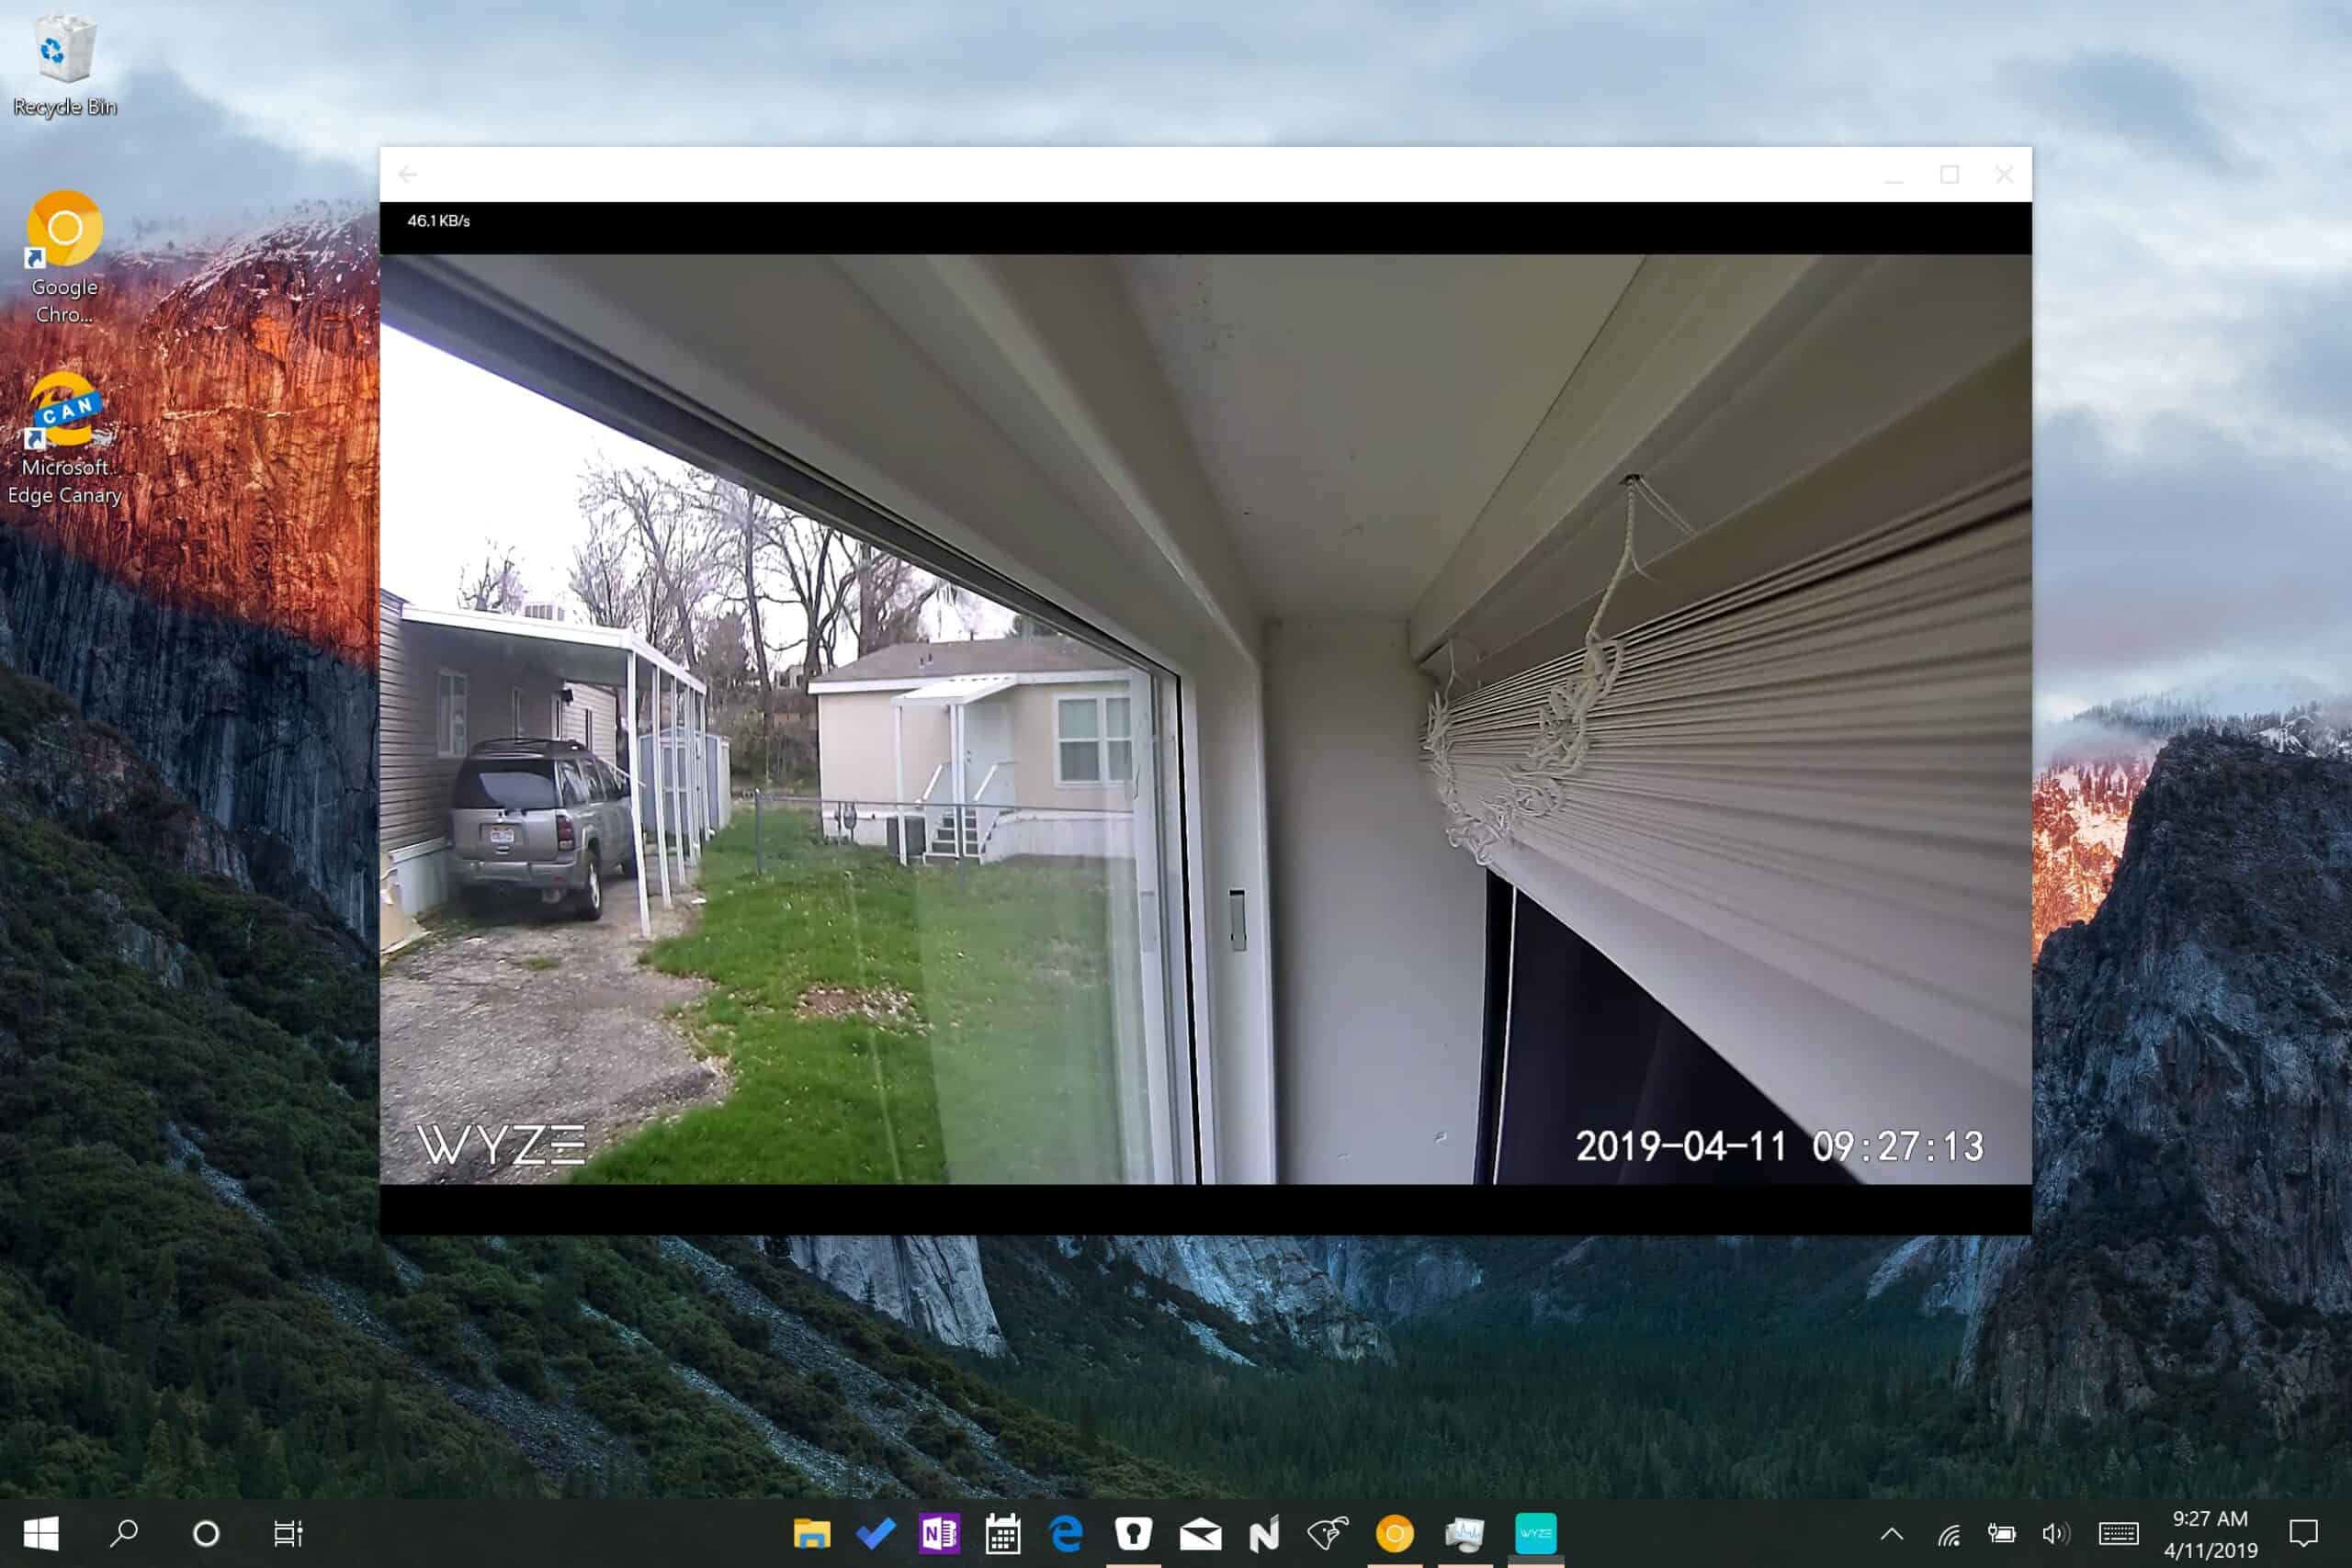 Can I Watch Wyze on my Computer?